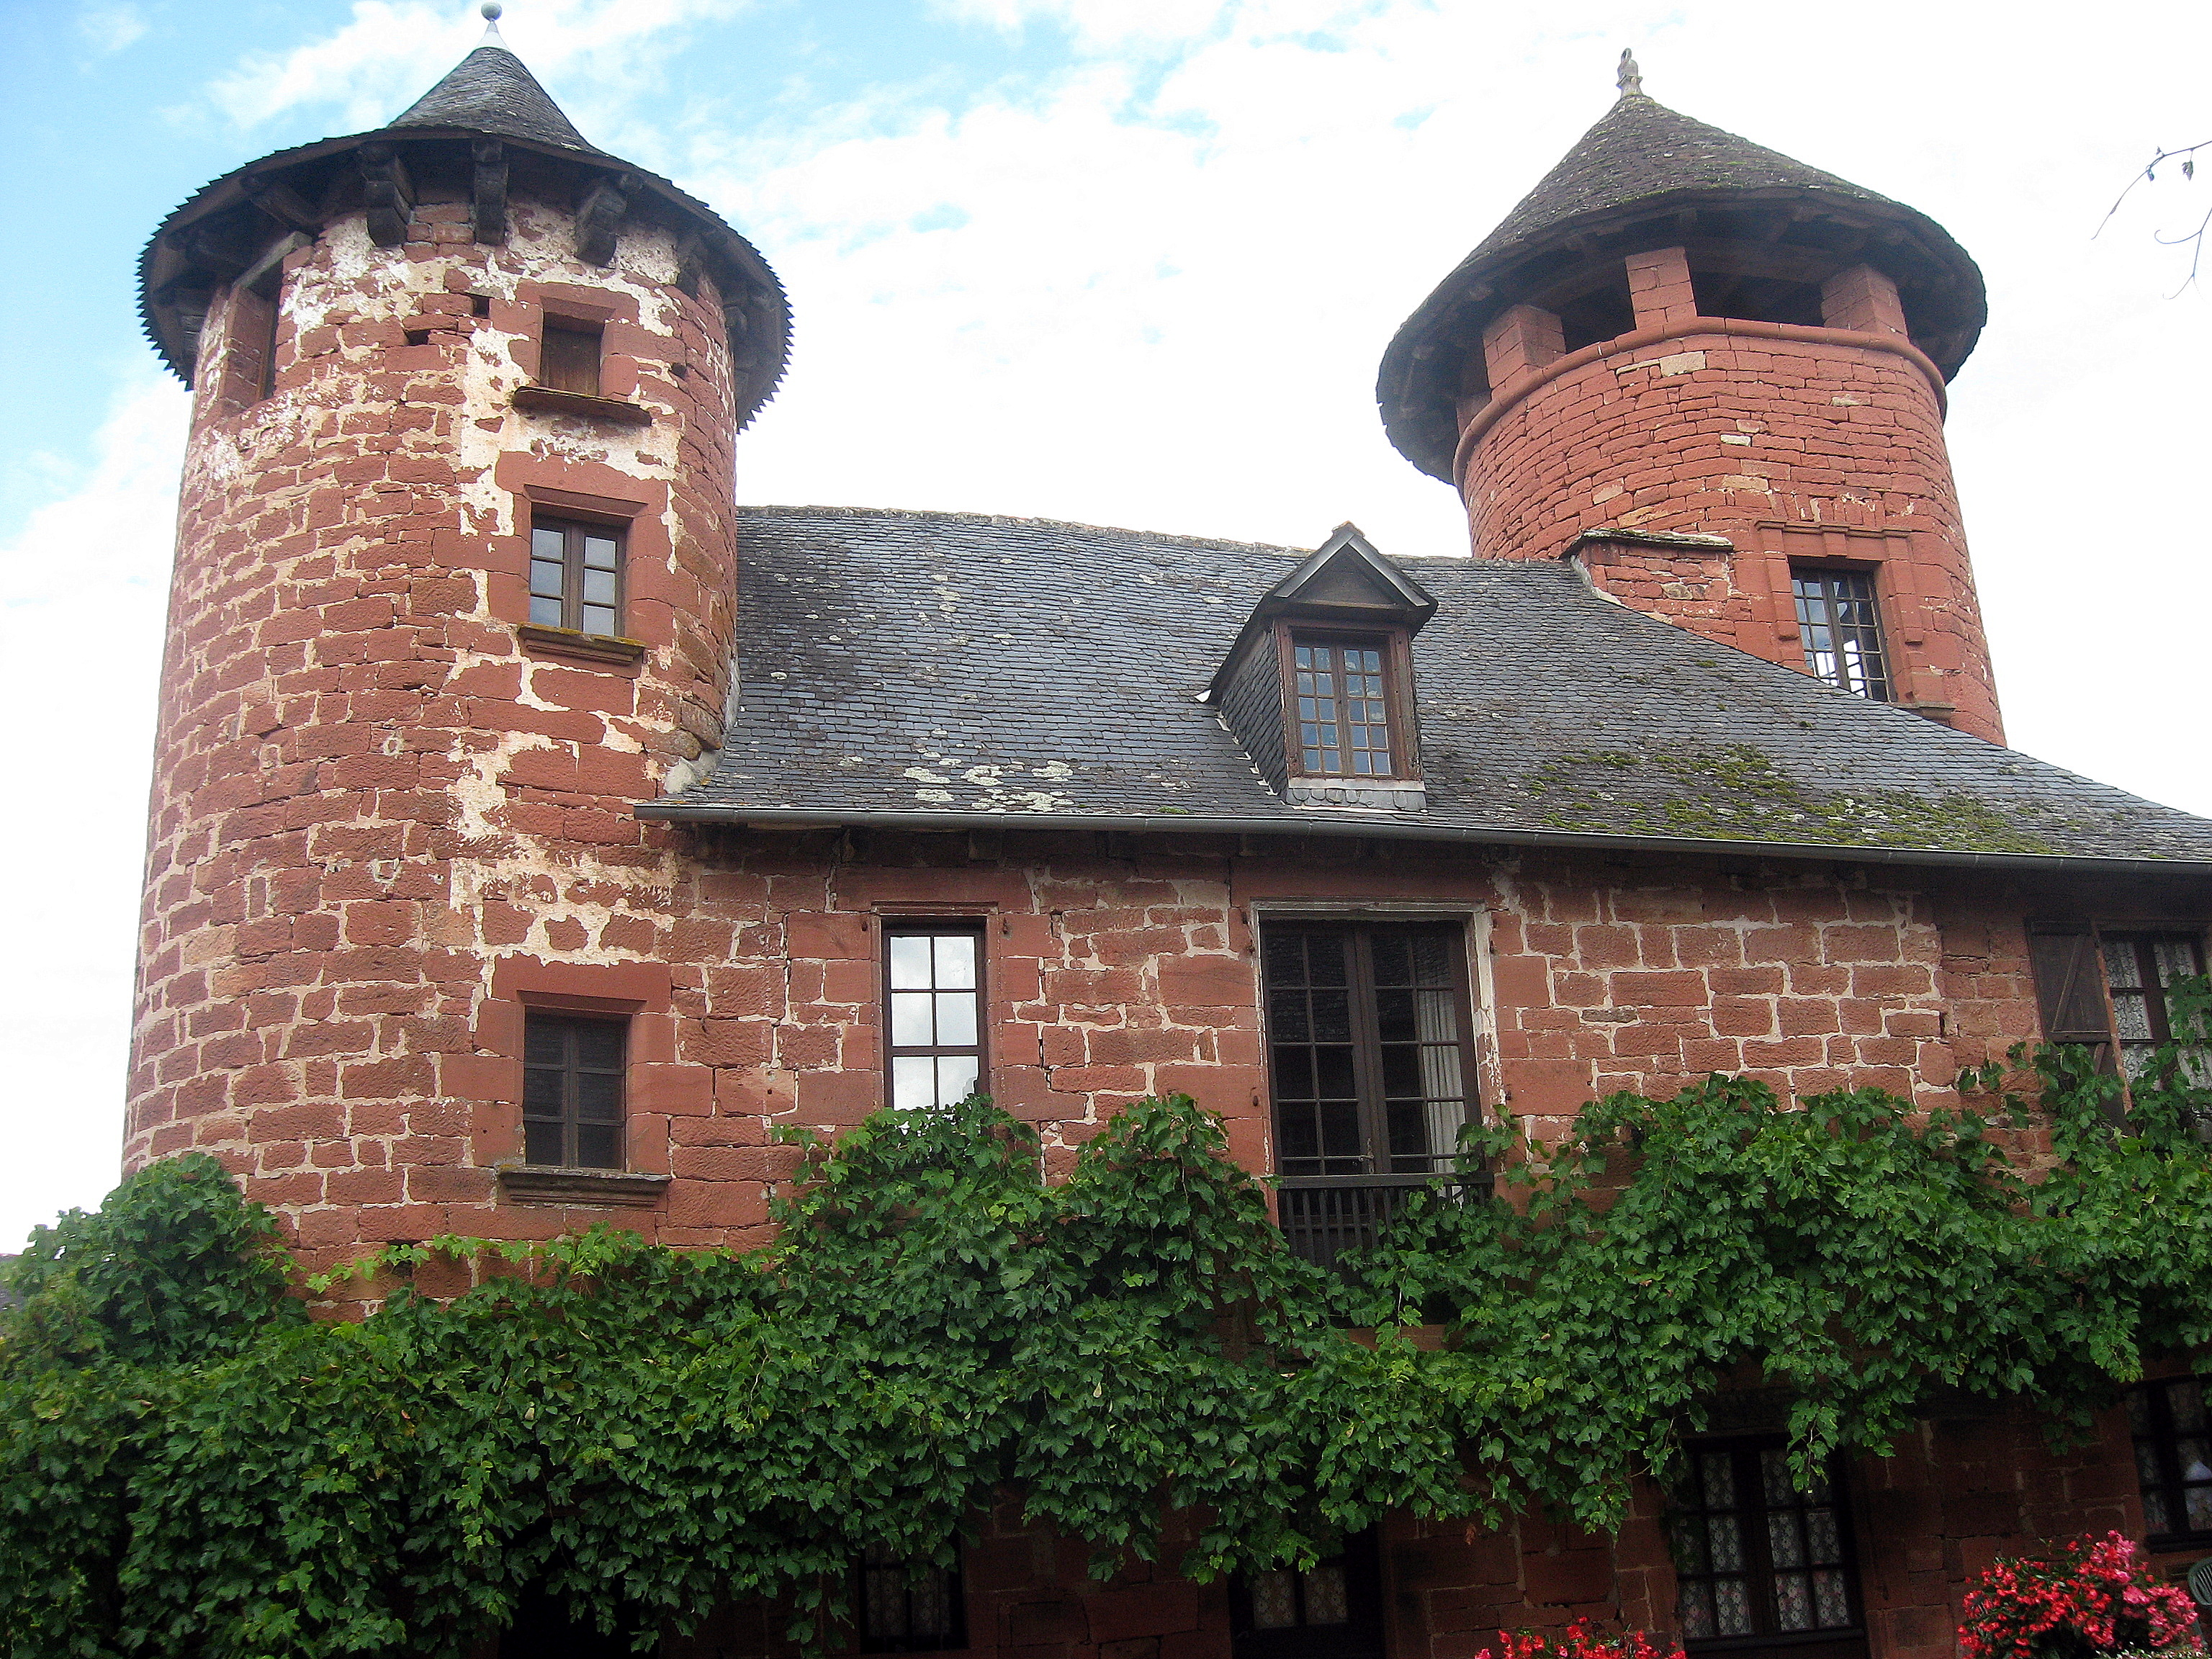 Collonges-la-Rouge, France - Twin turrets.